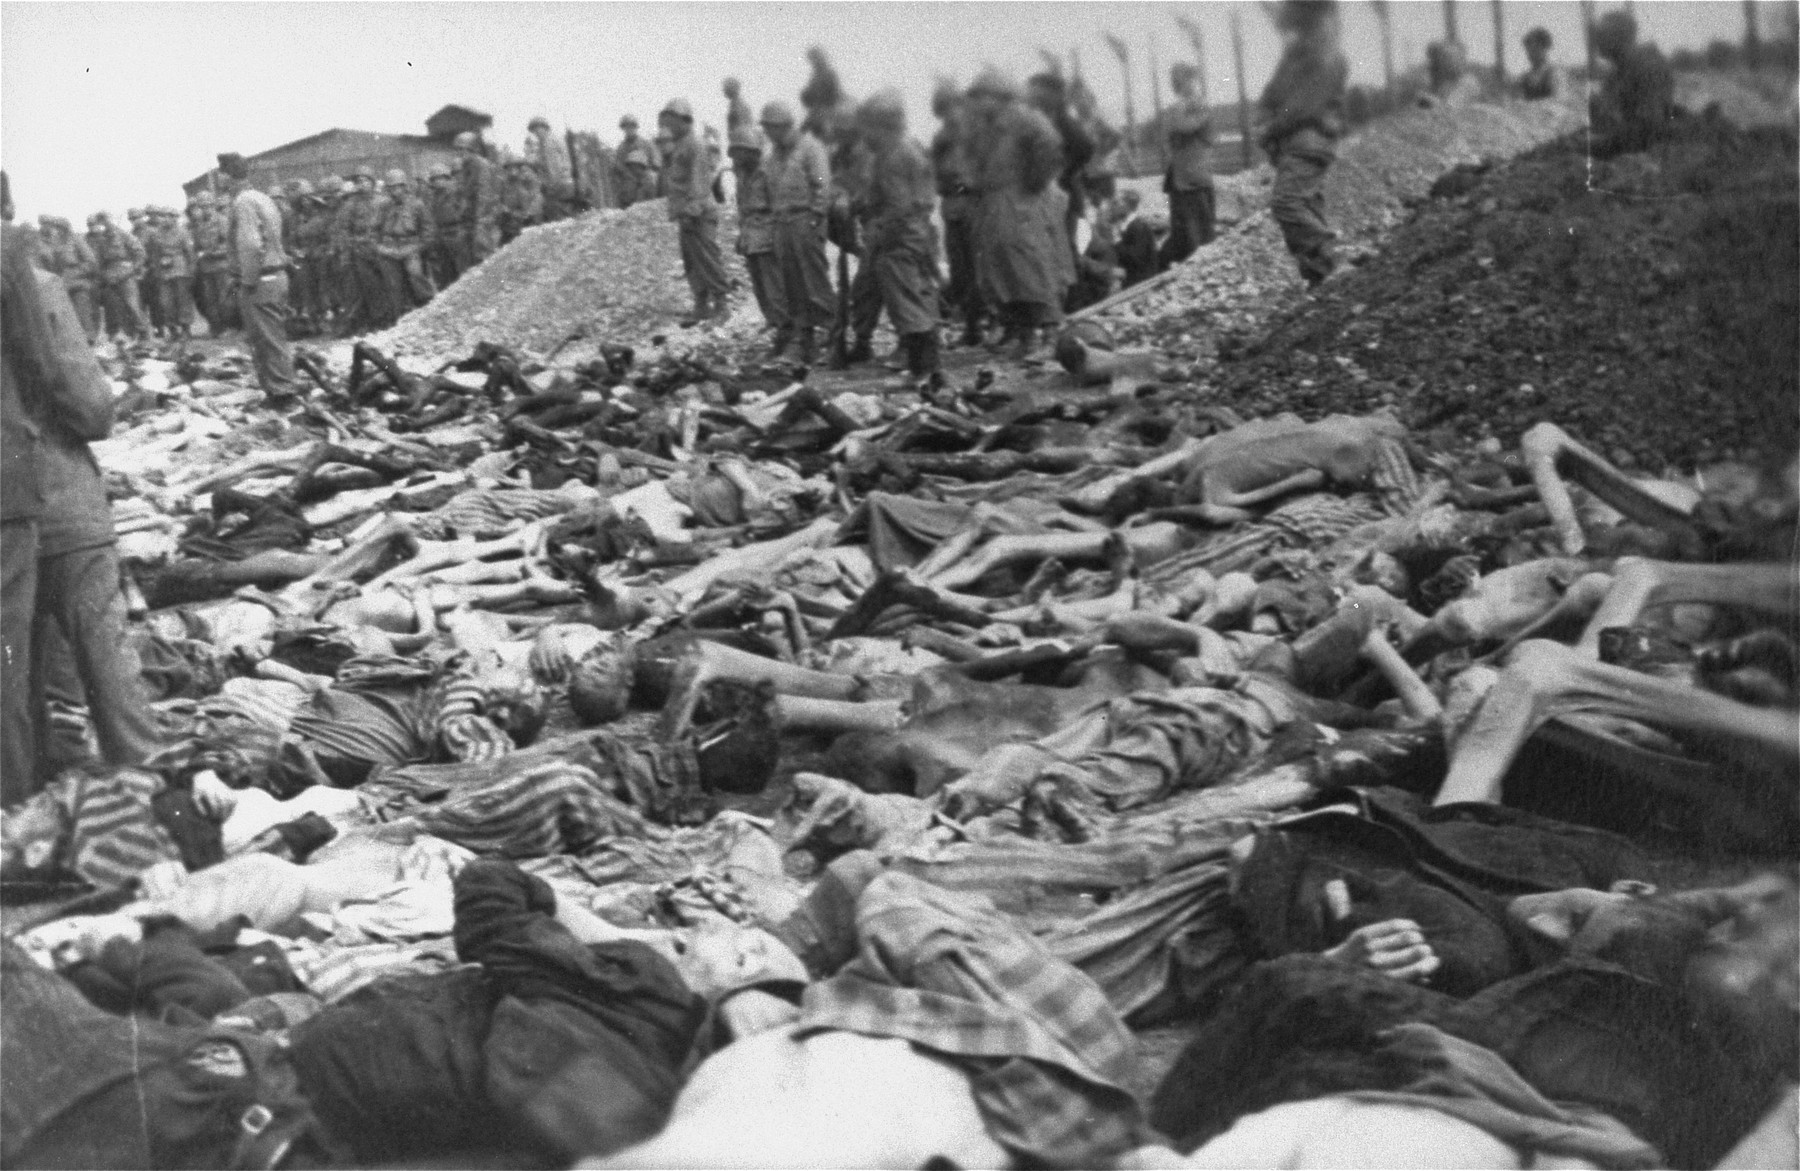 American troops look at rows of corpses in the Kaufering IV concentration camp, while Germans conscripted from the surrounding area dig mass graves.